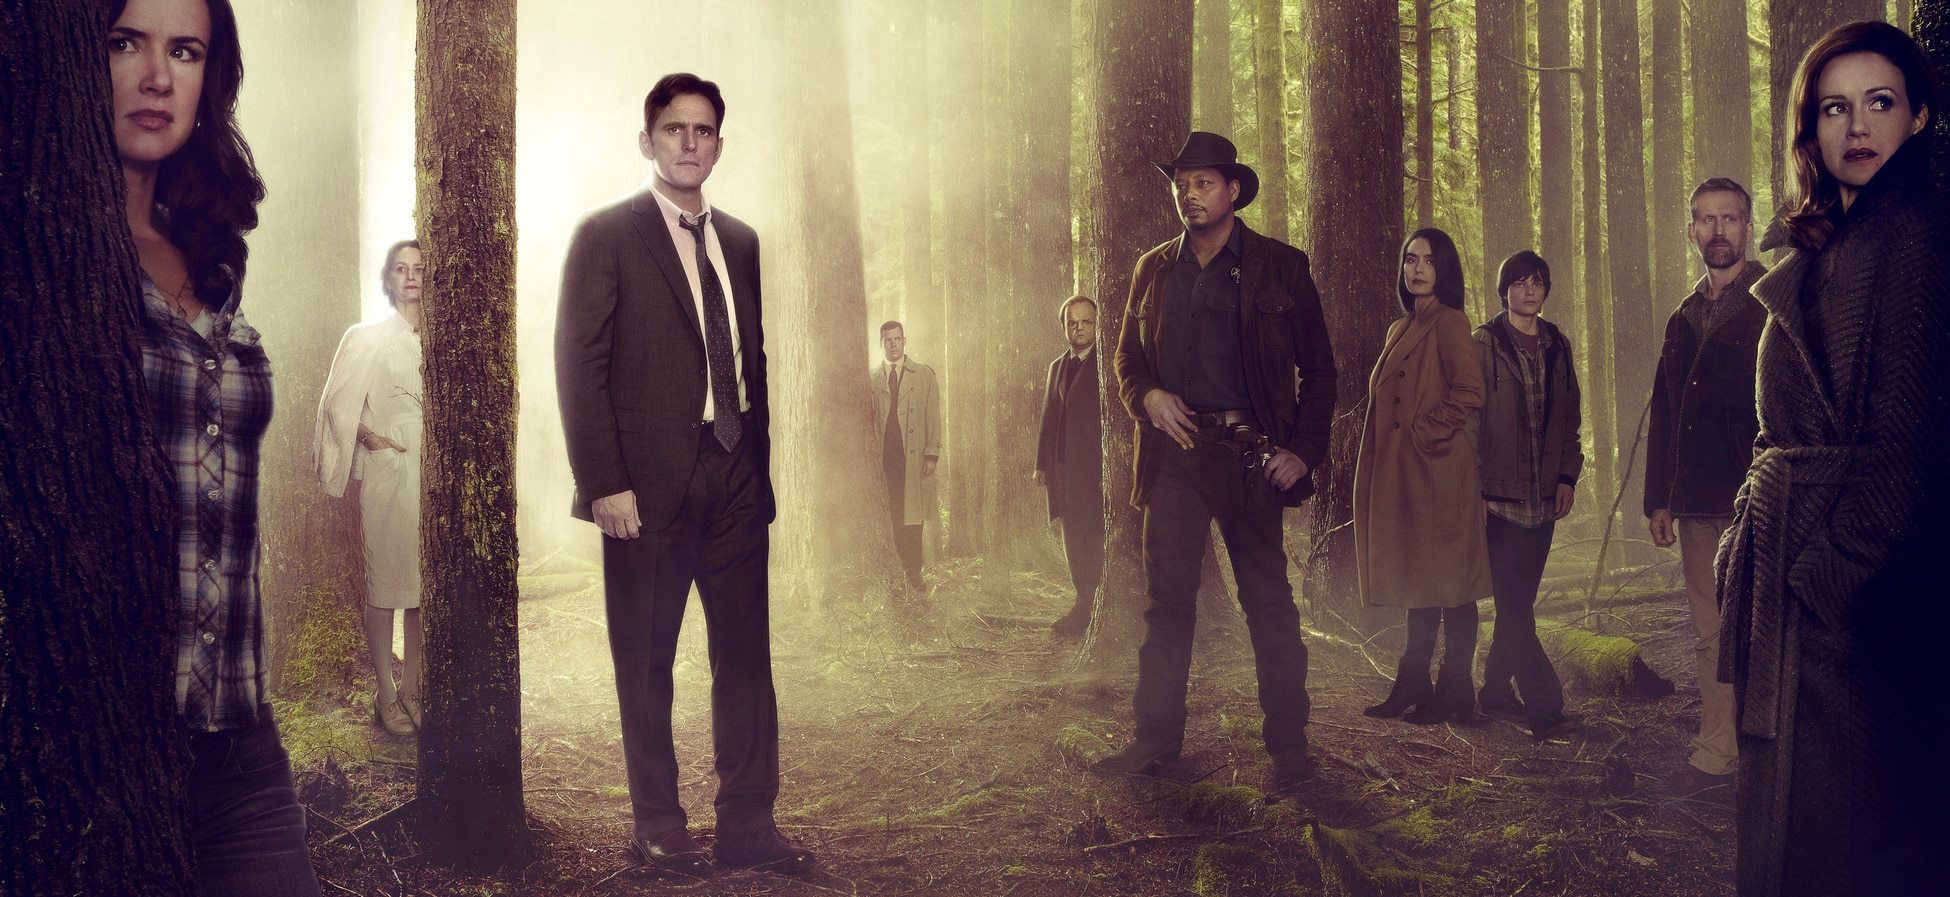 WAYBB 43 M5.0V15 hires1 - Enjoy Life and This New Teaser for Fox's Wayward Pines